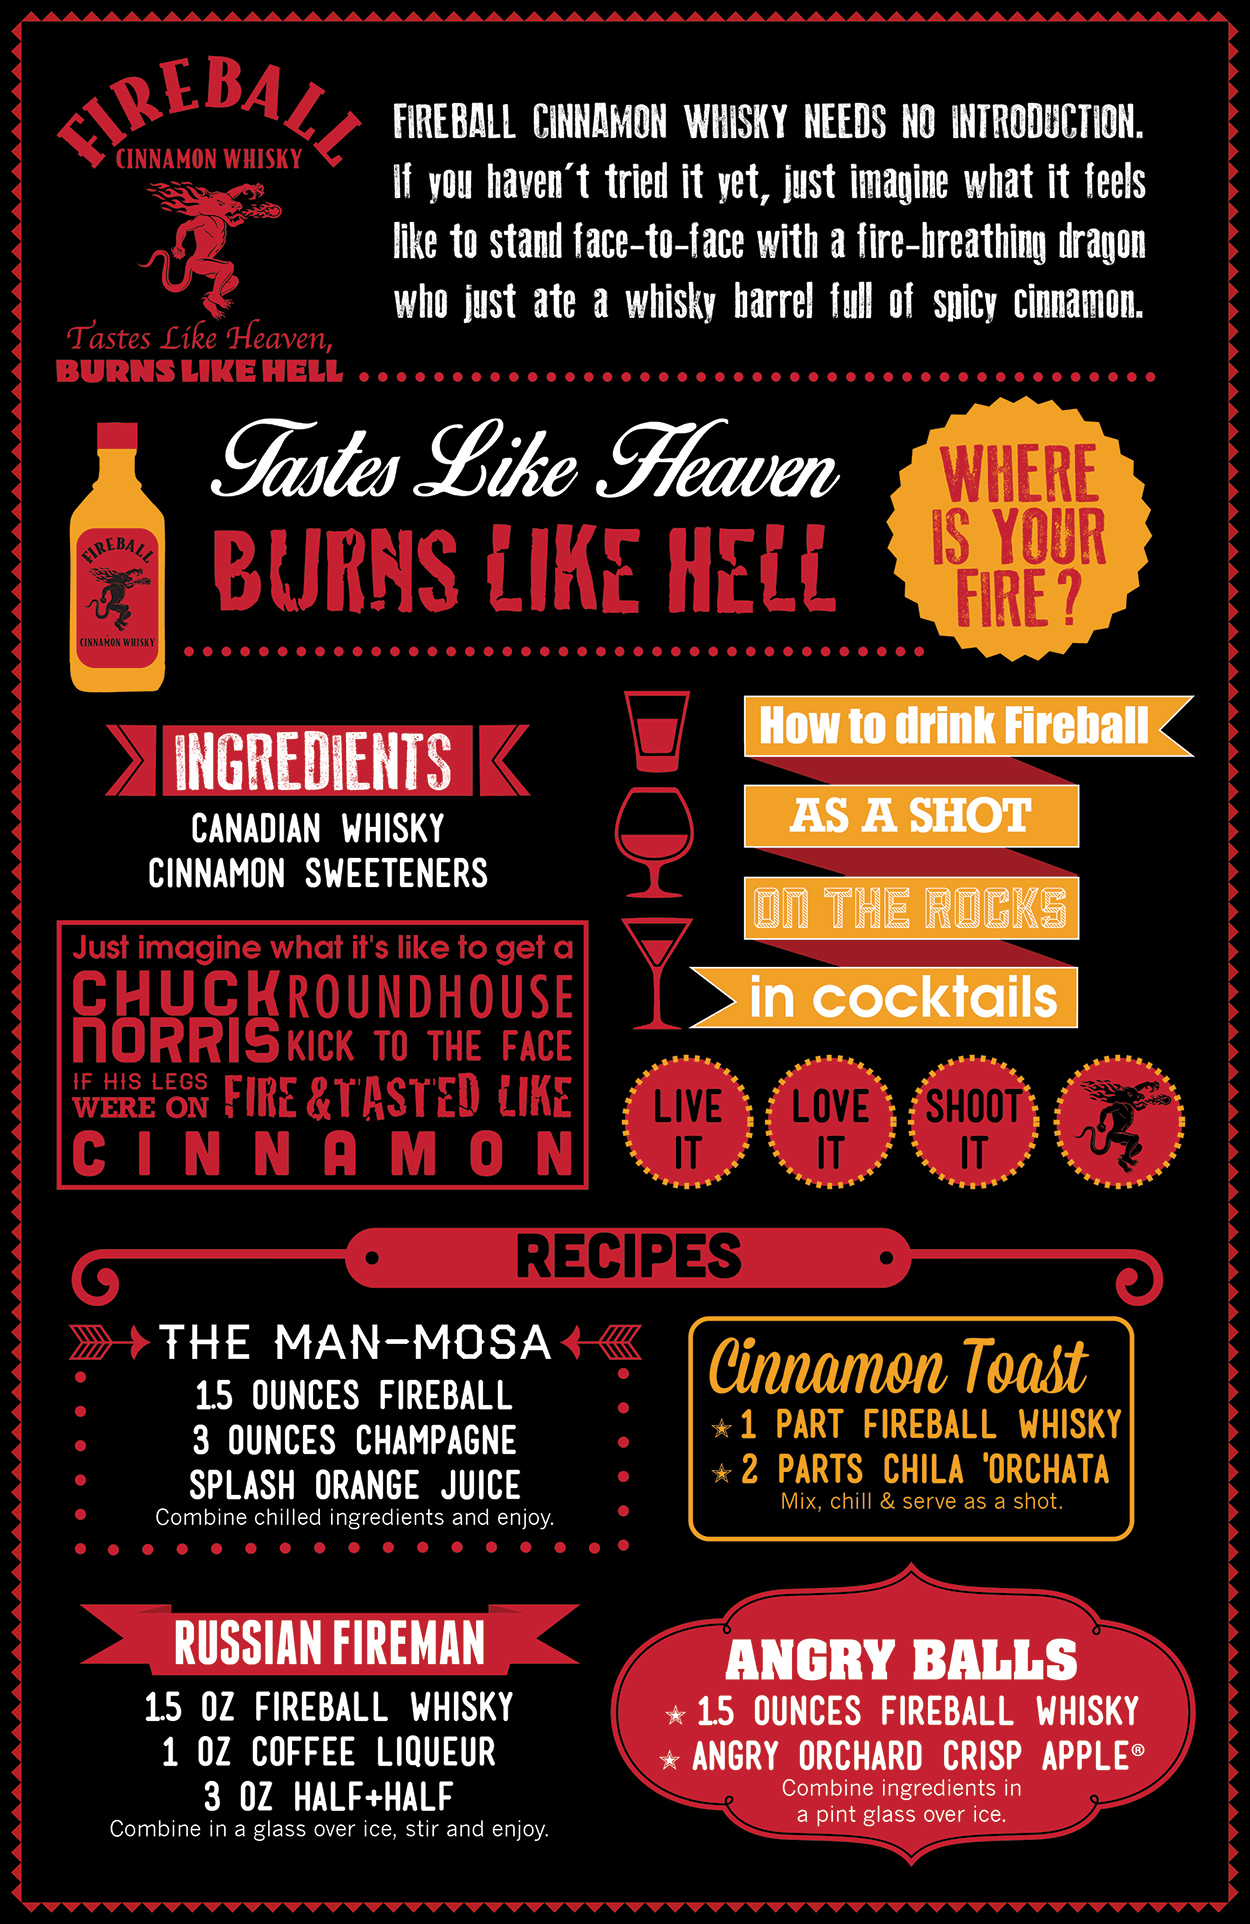 Fireball Cinnamon Whiskey Infographic by DreamBig Creative Minneapolis, MN